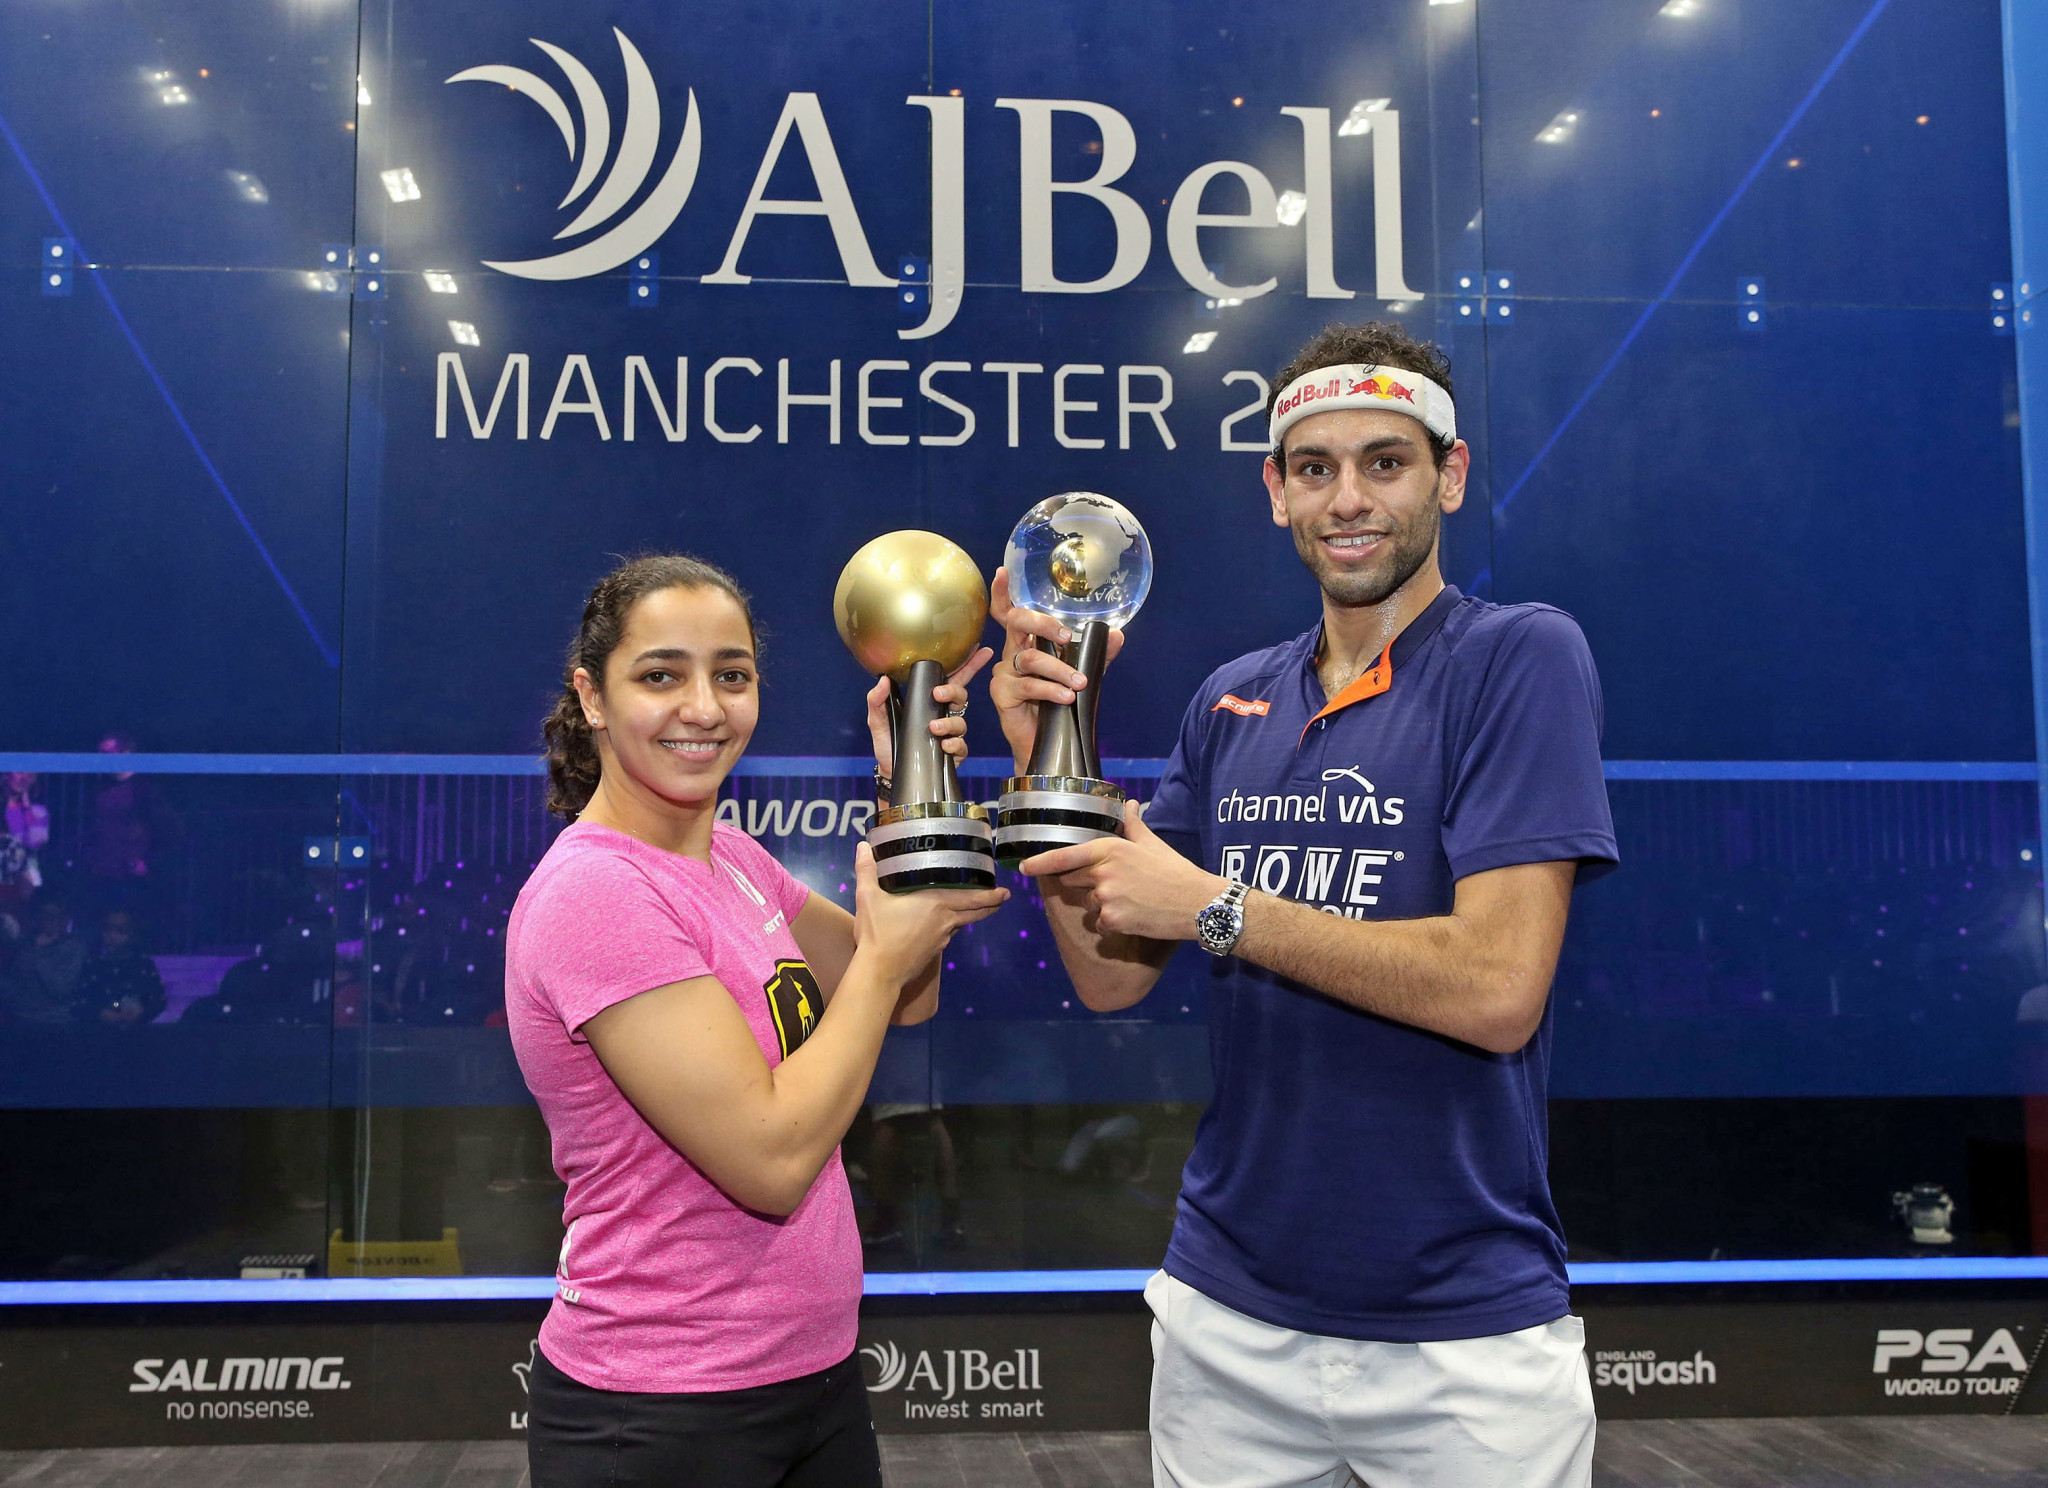 Mohamed Elshorbagy and El Welily crowned winners at 2017 PSA World Championships